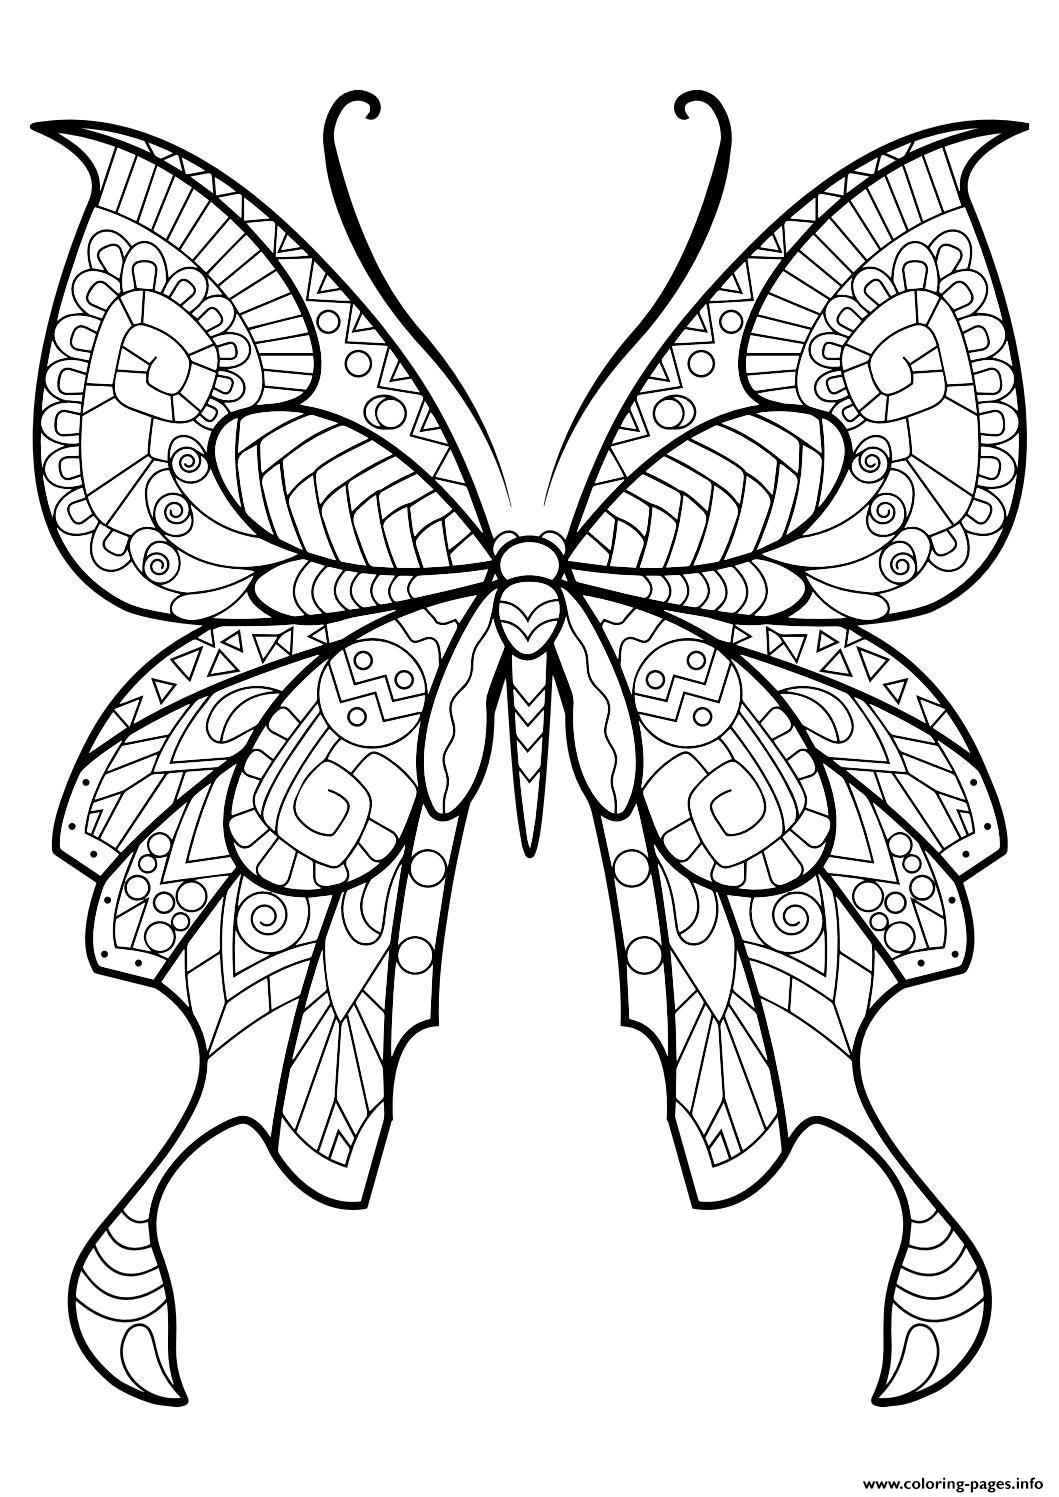 Zentangle Coloring Pages